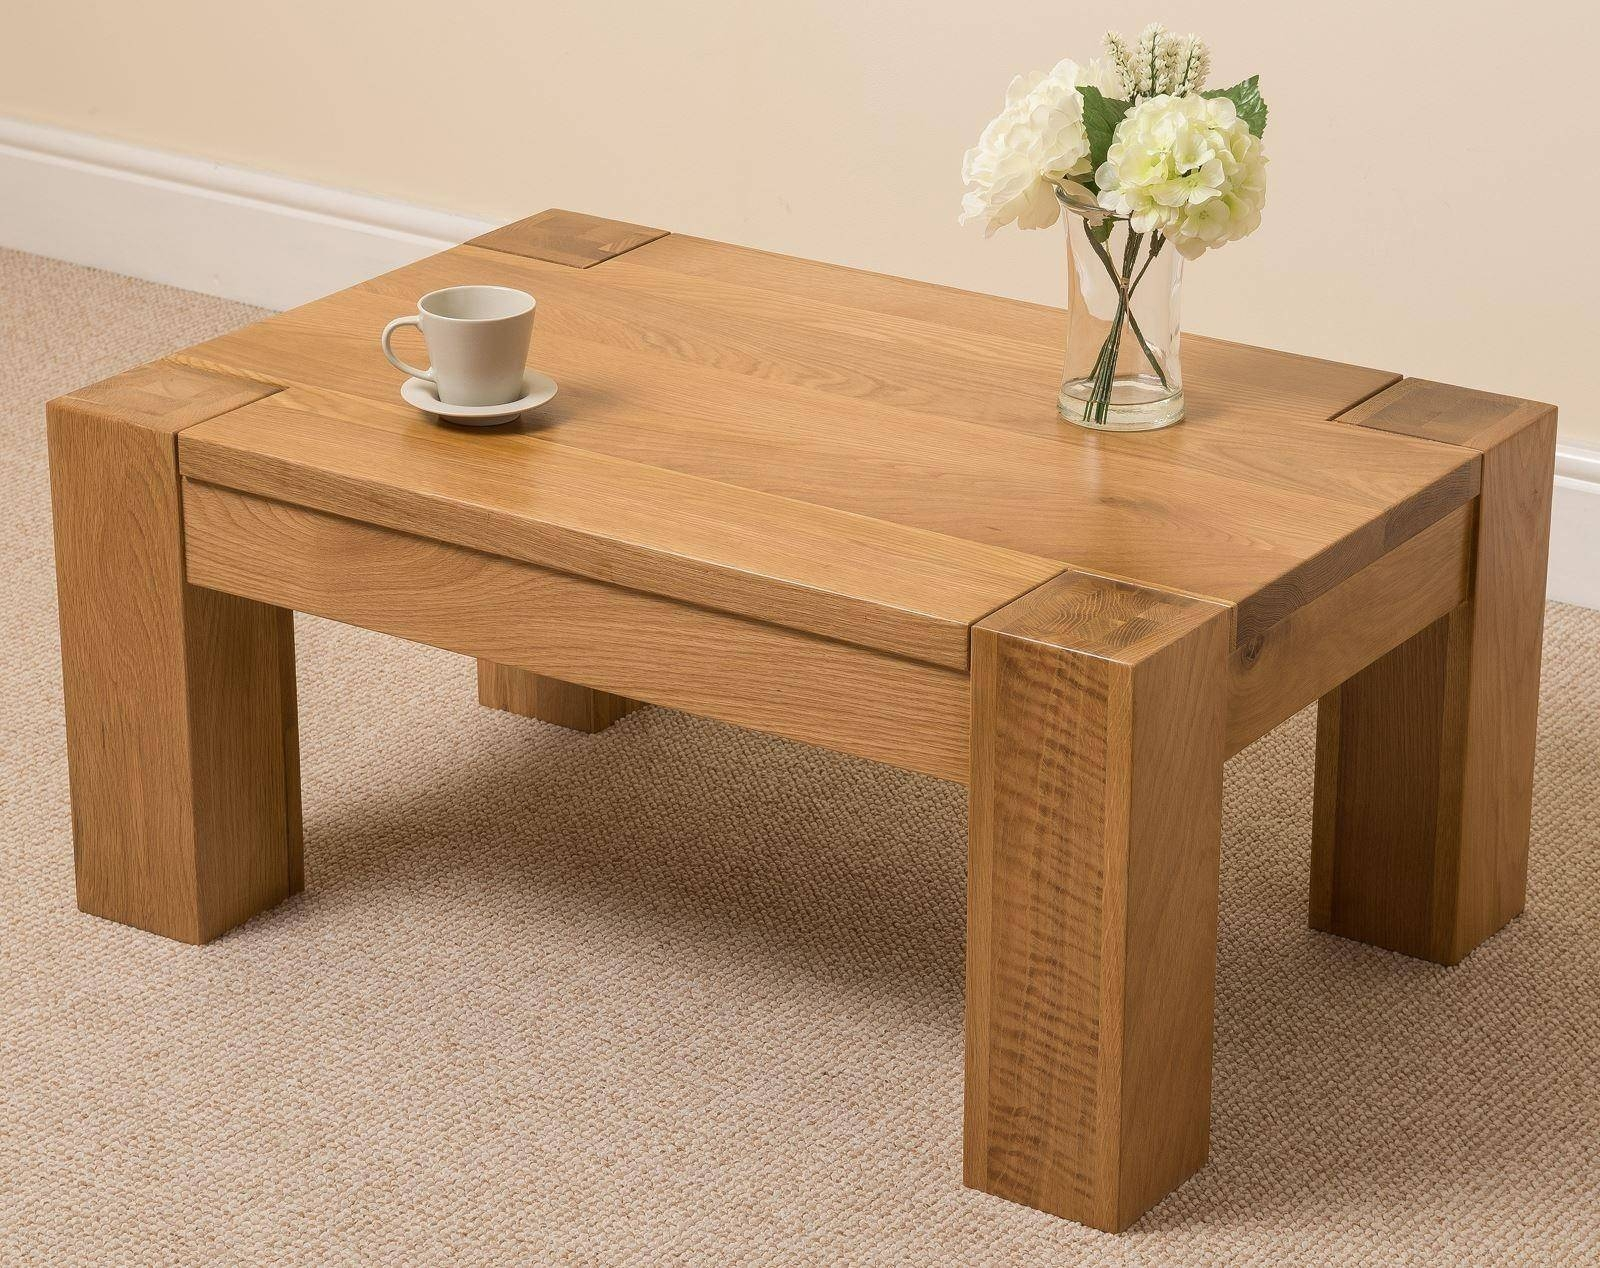 Coffee Table: Terrific Light Wood Coffee Table Designs Light Inside Chunky Rustic Coffee Tables (View 9 of 30)